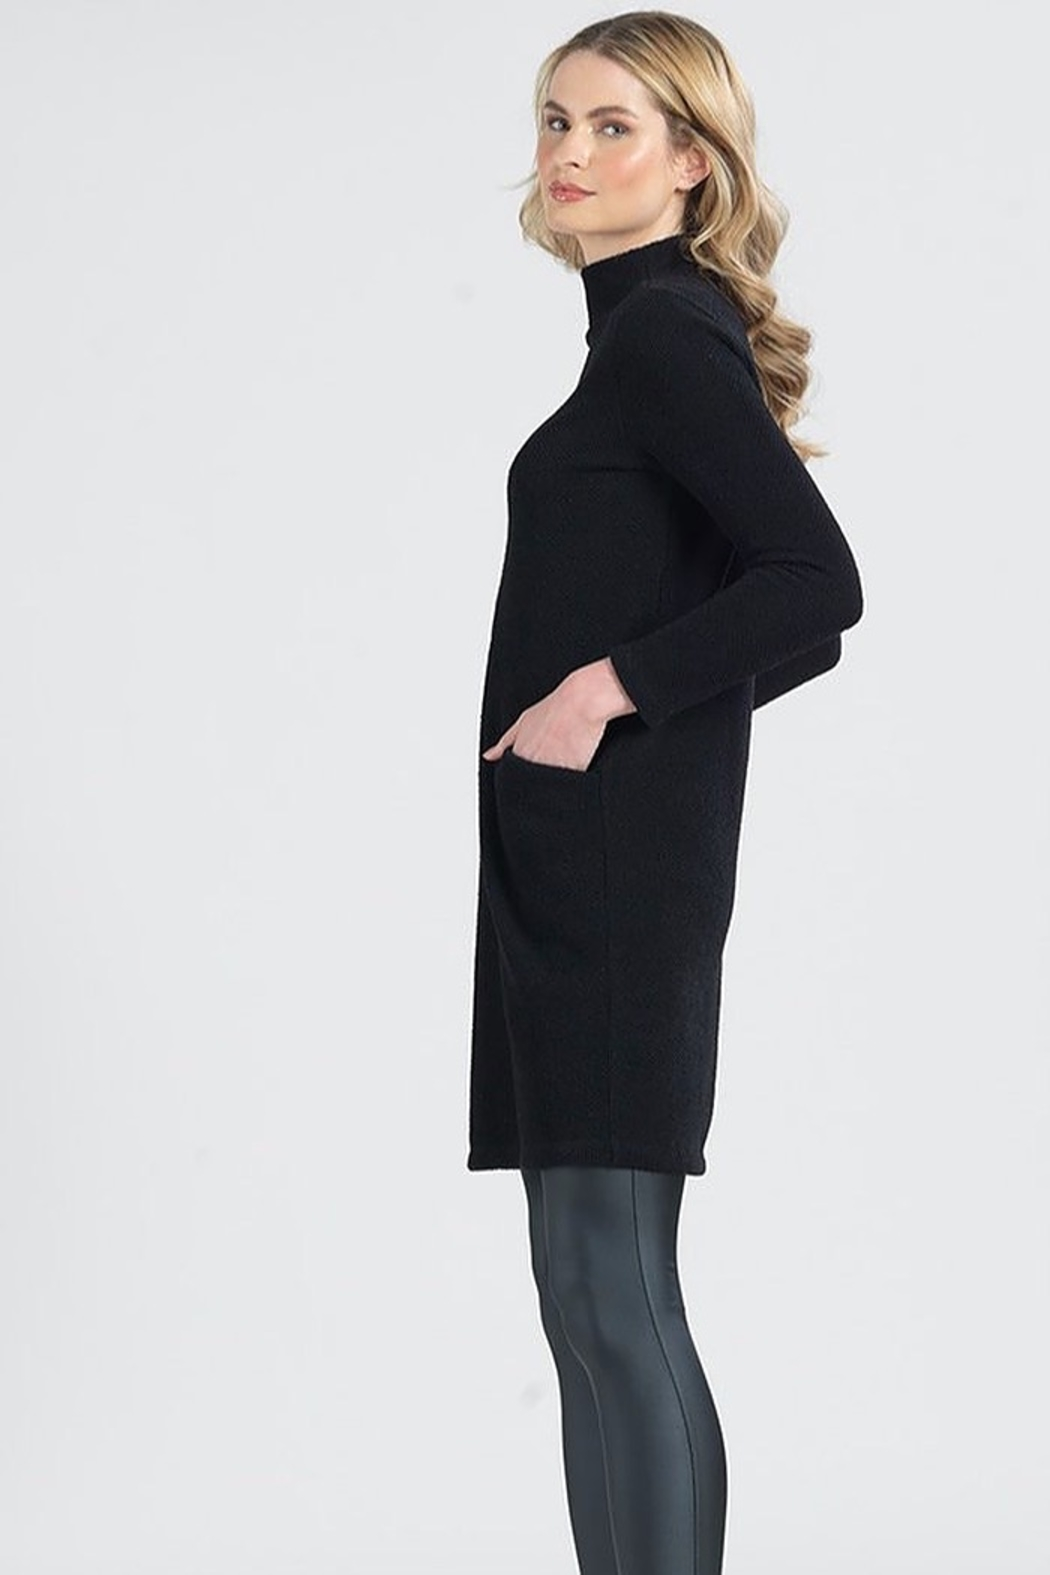 Clara Sunwoo Funnel Neck Knit Dress - Front Full Image